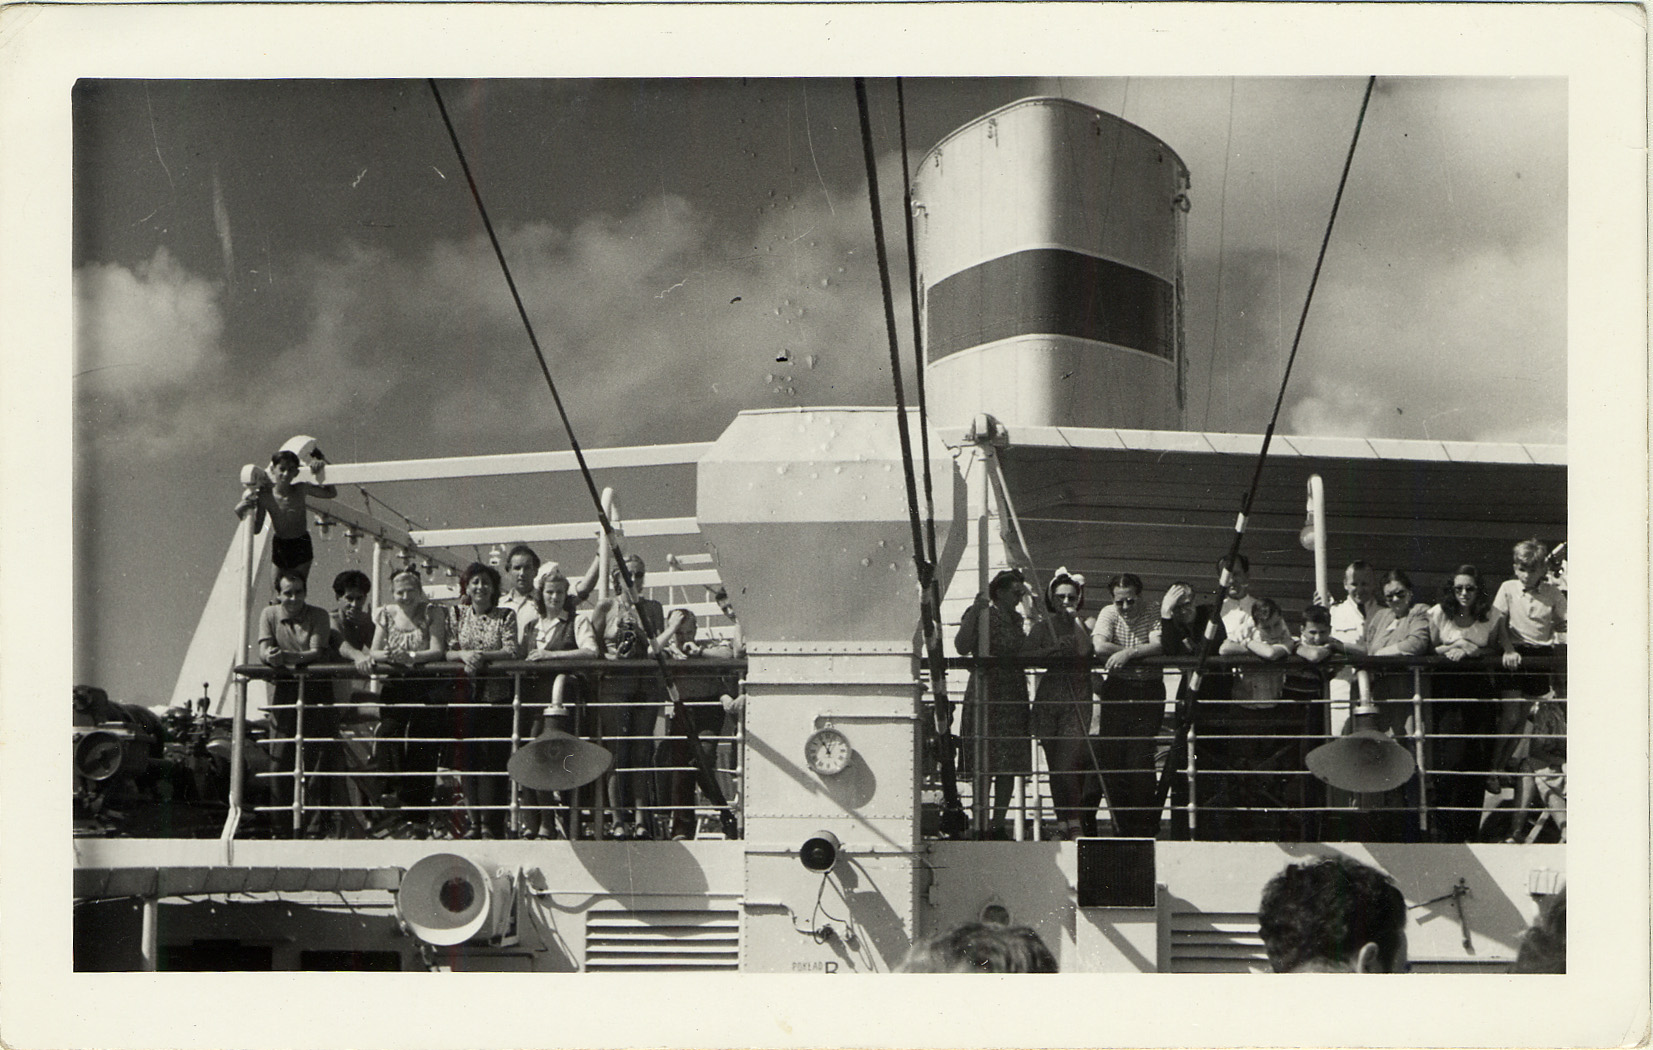 A group of men, women and children stand on the Serpa Pinto ship's balcony.